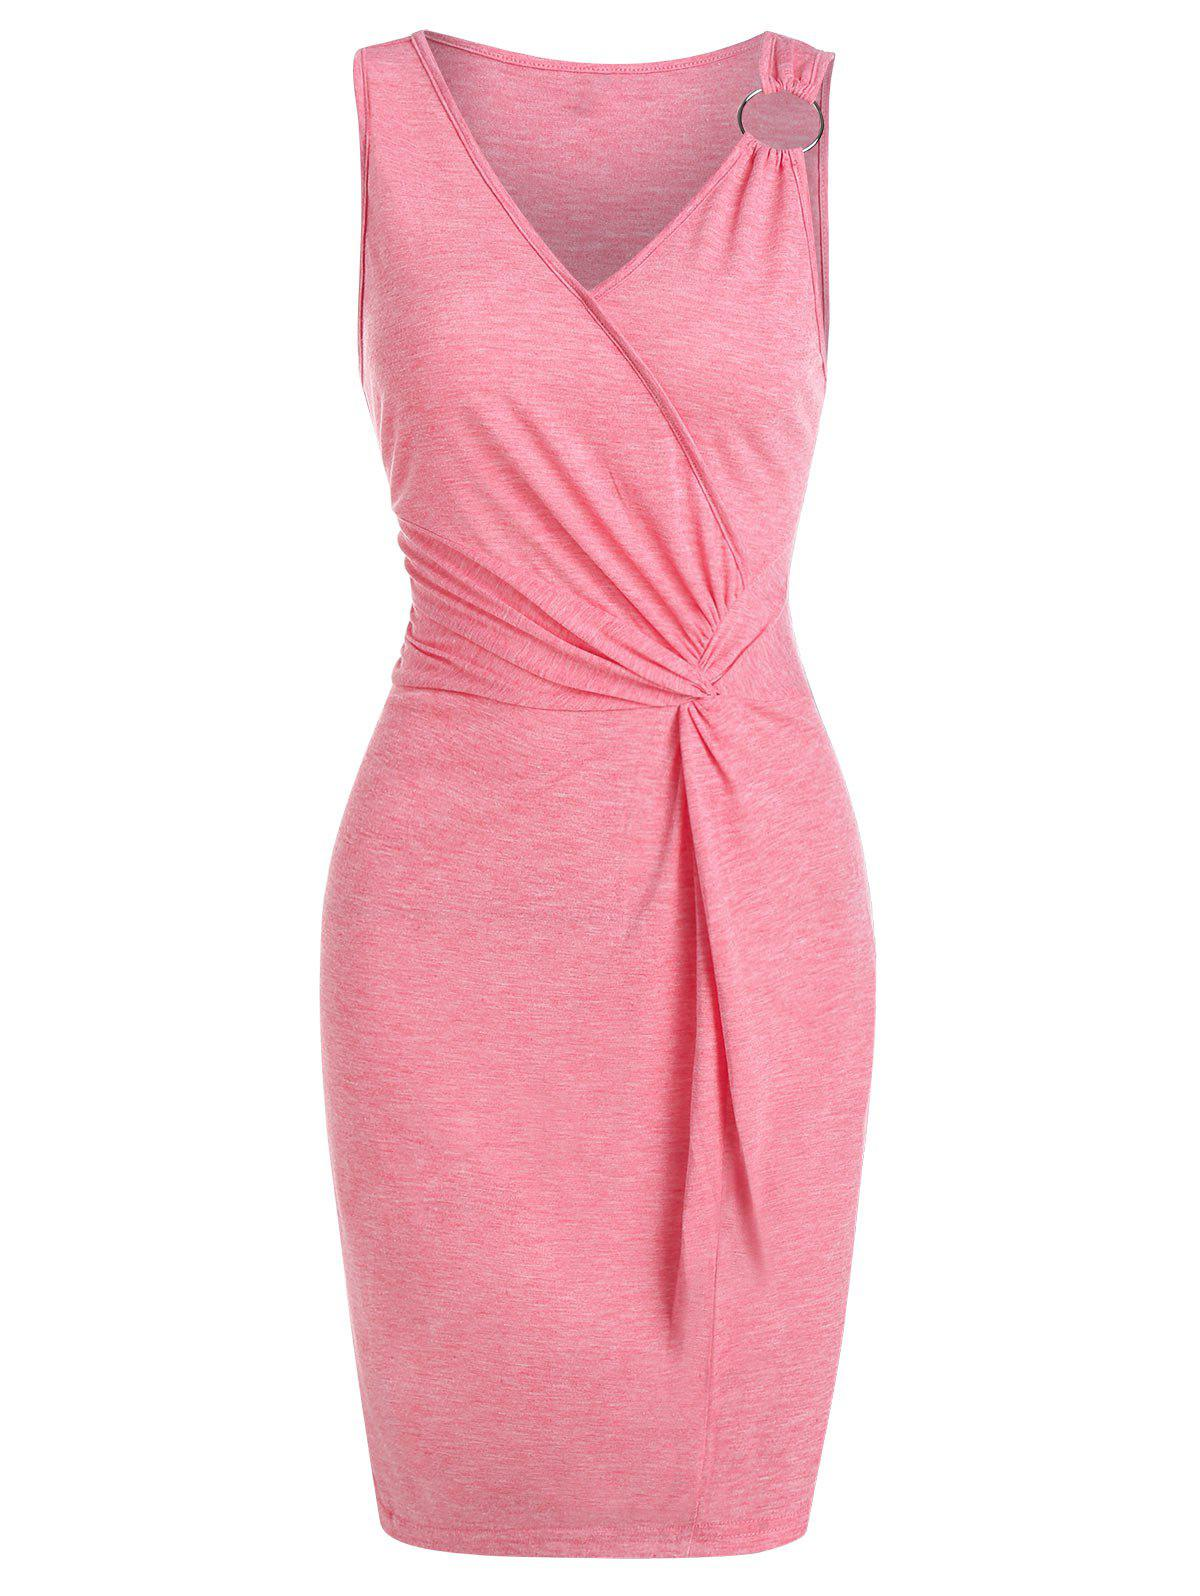 Twist Front O-ring Sleeveless Heathered Bodycon Dress - FLAMINGO PINK M